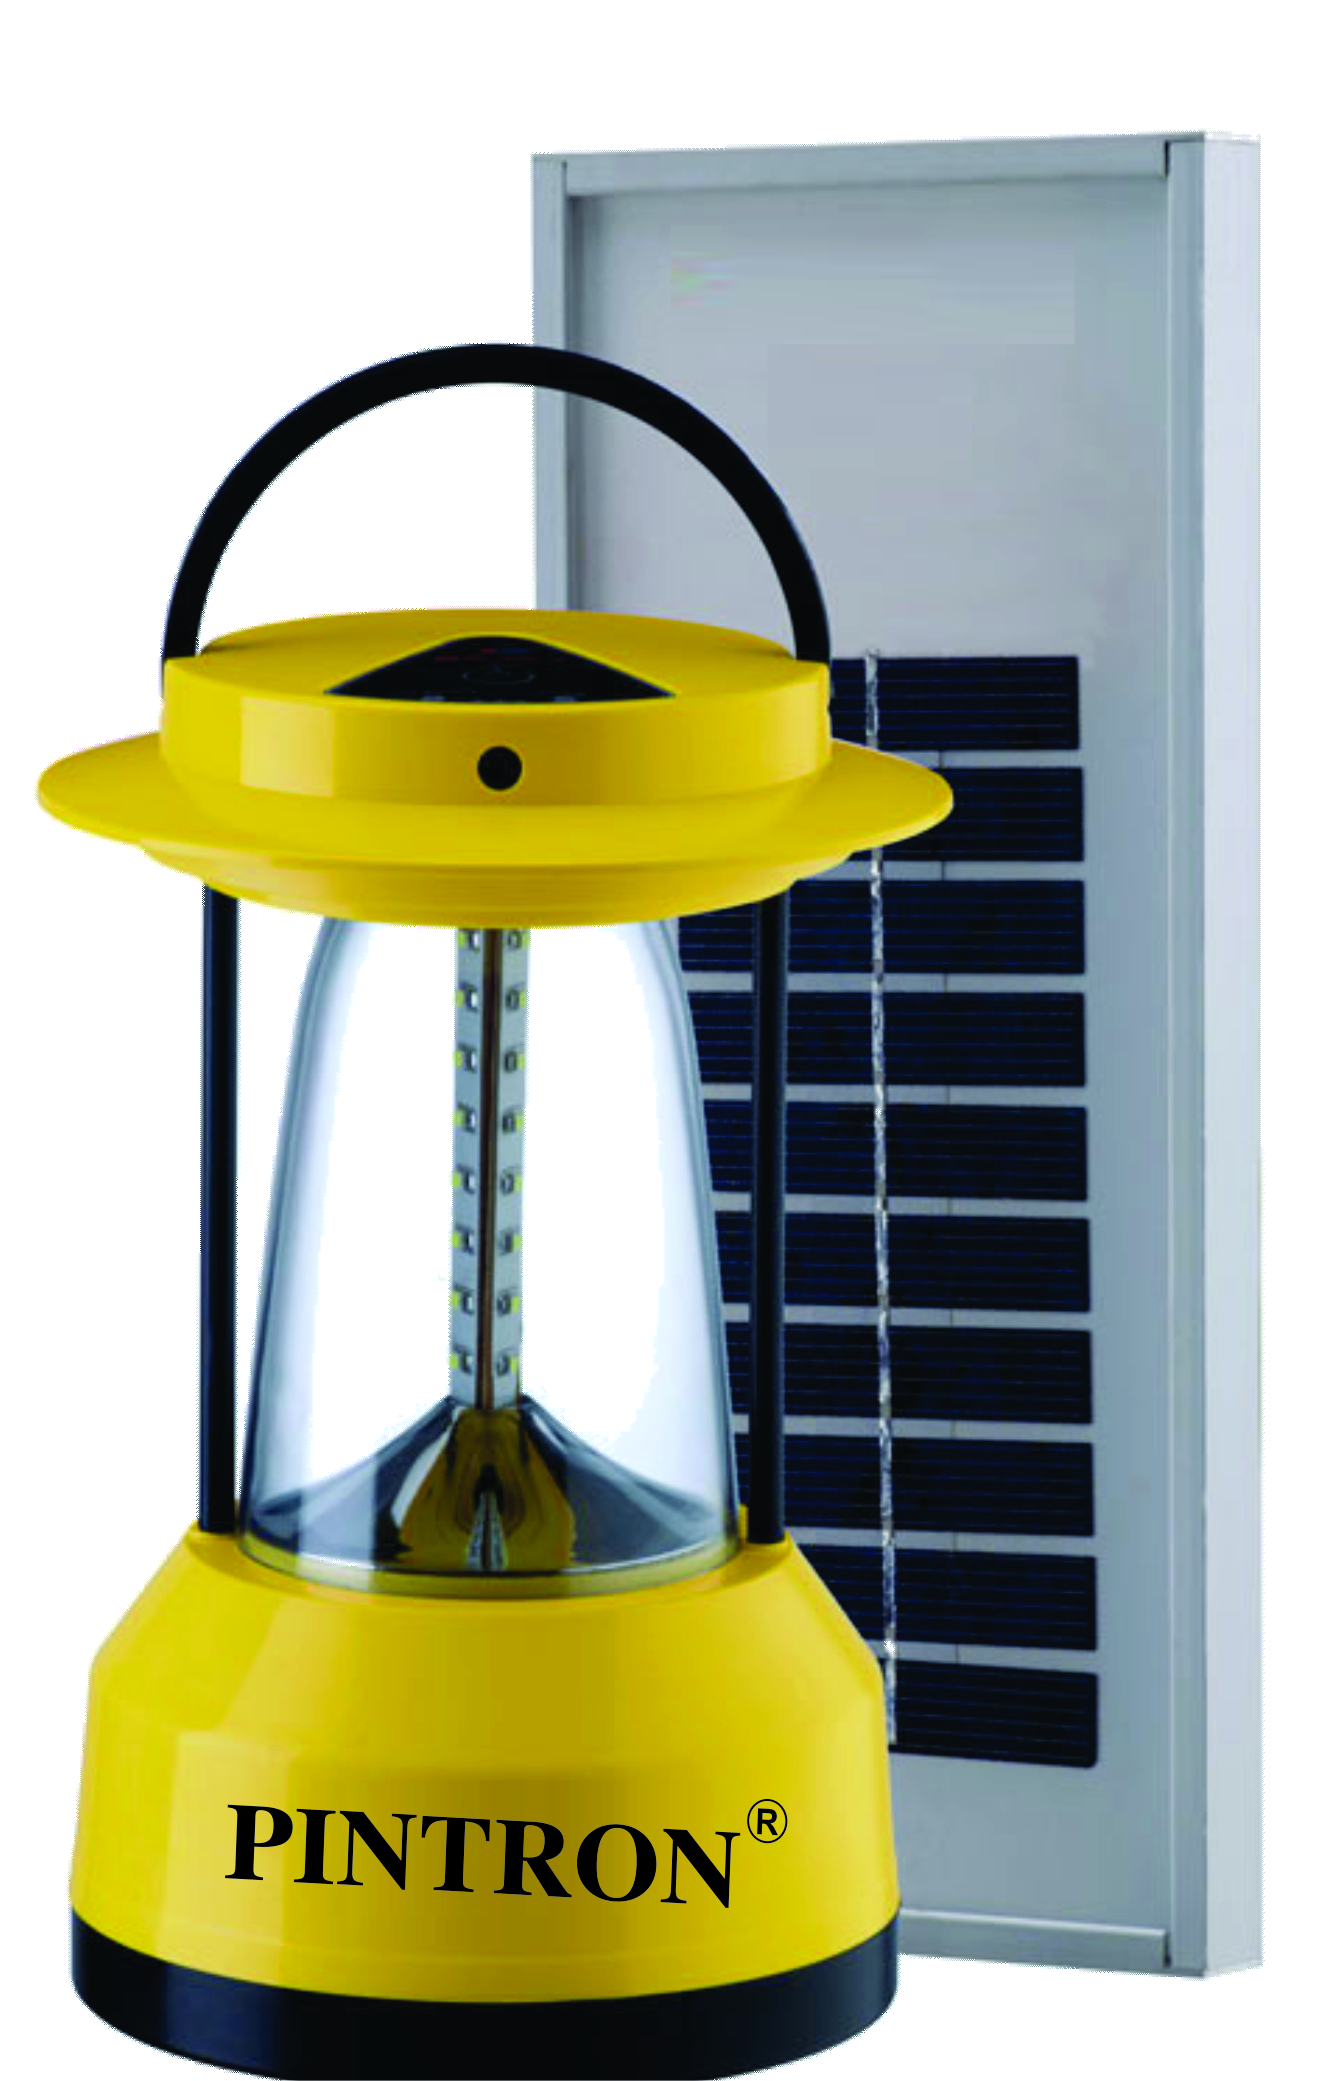 Pintron-Lantern-Solar-Emergency-Light